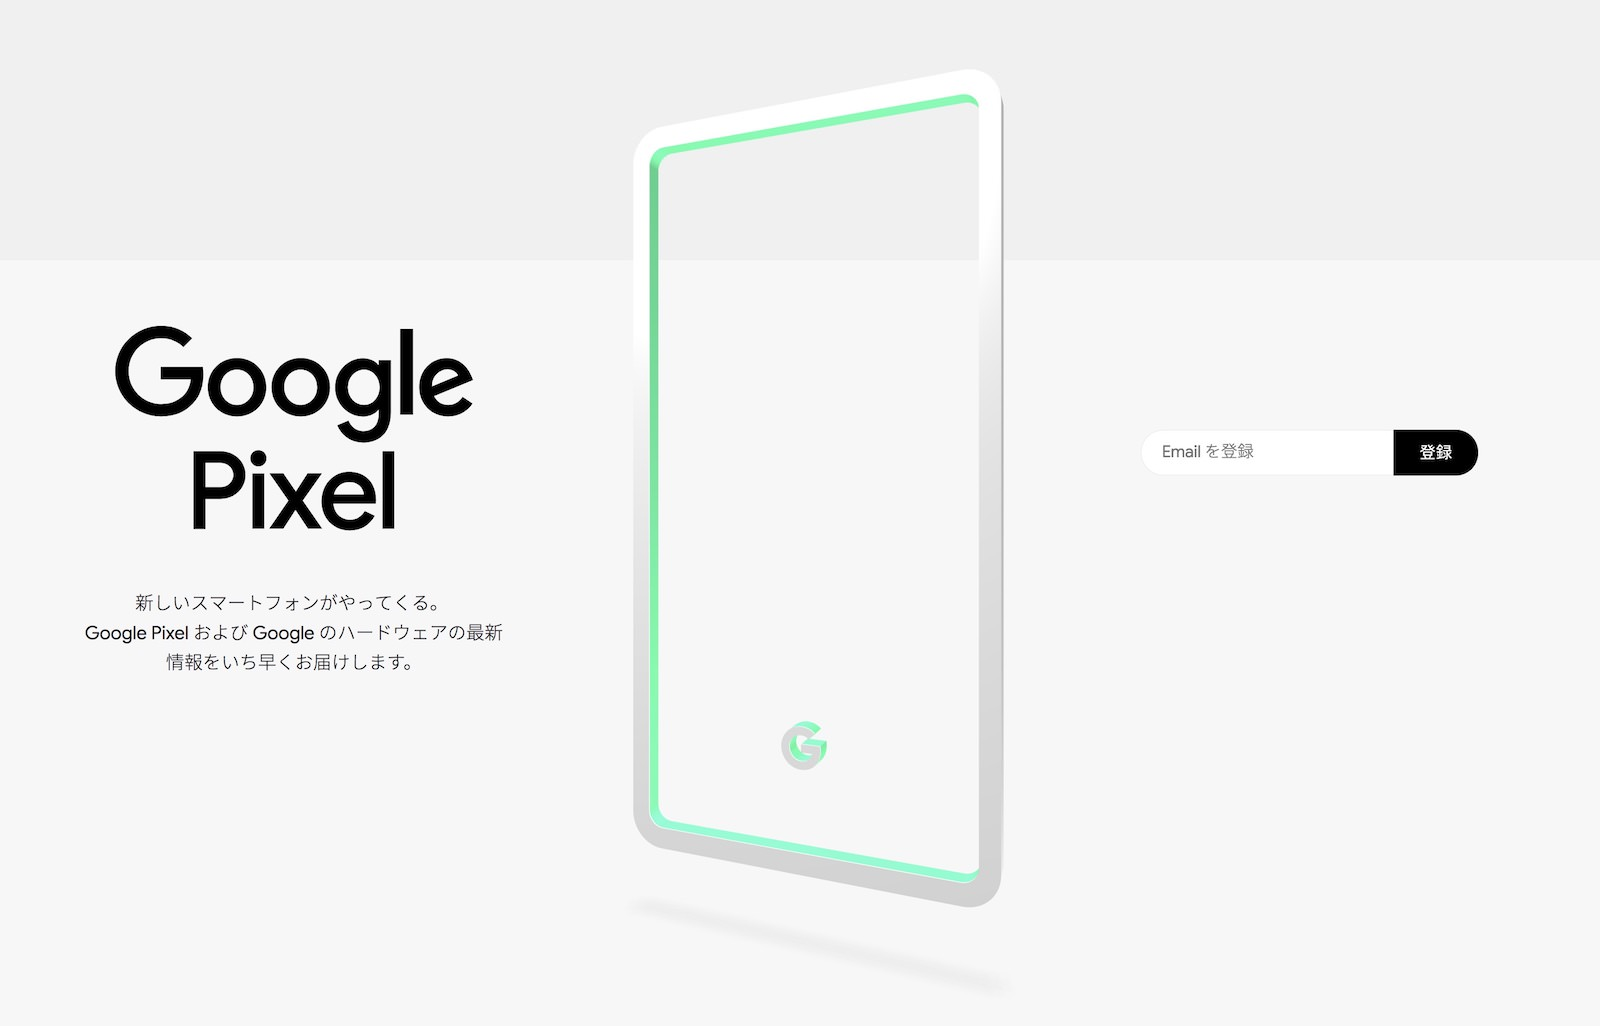 Google Pixel coming to japan